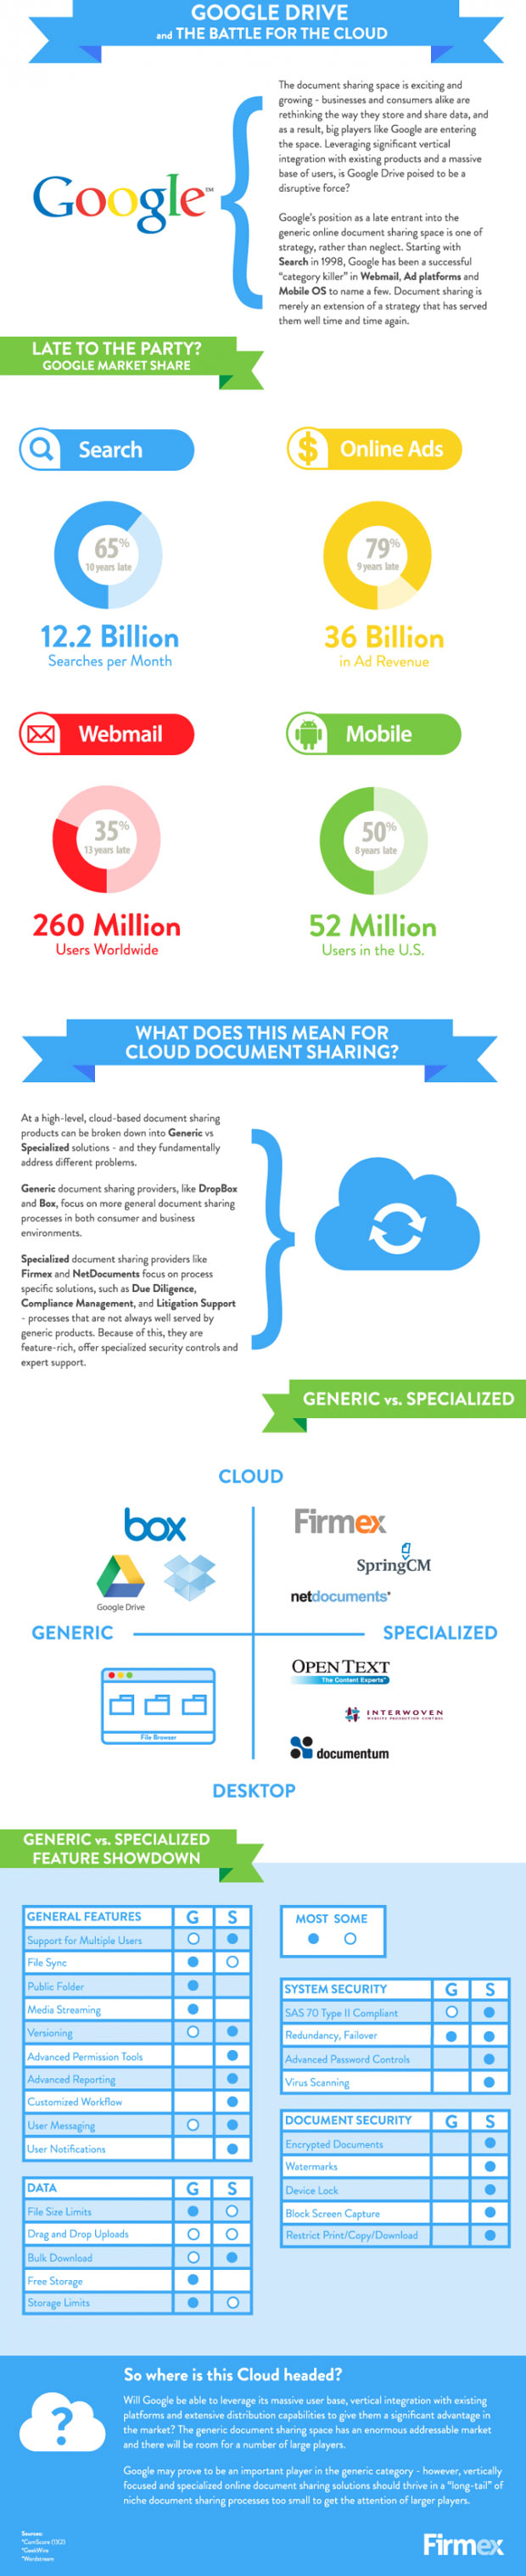 google drive cloud computing infographic